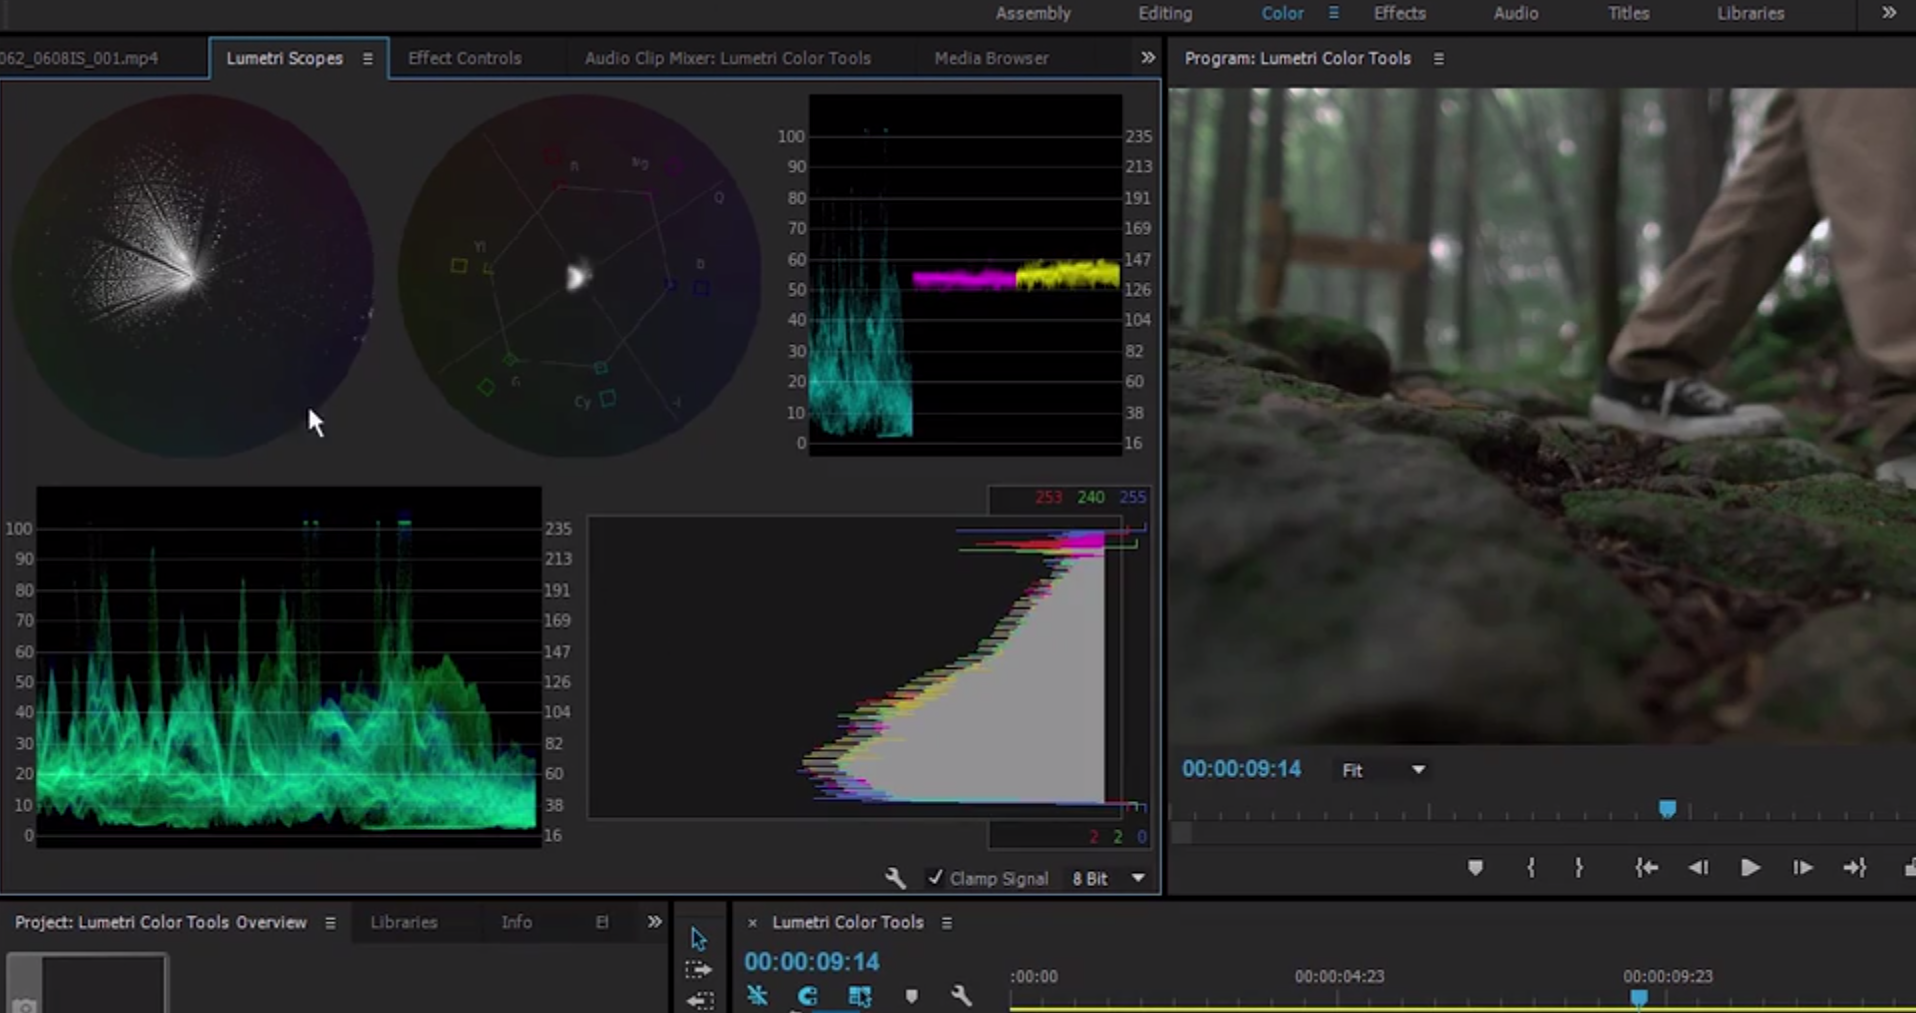 Adobe Premiere Pro: 8 Helpful Tips and Tricks From the Pros